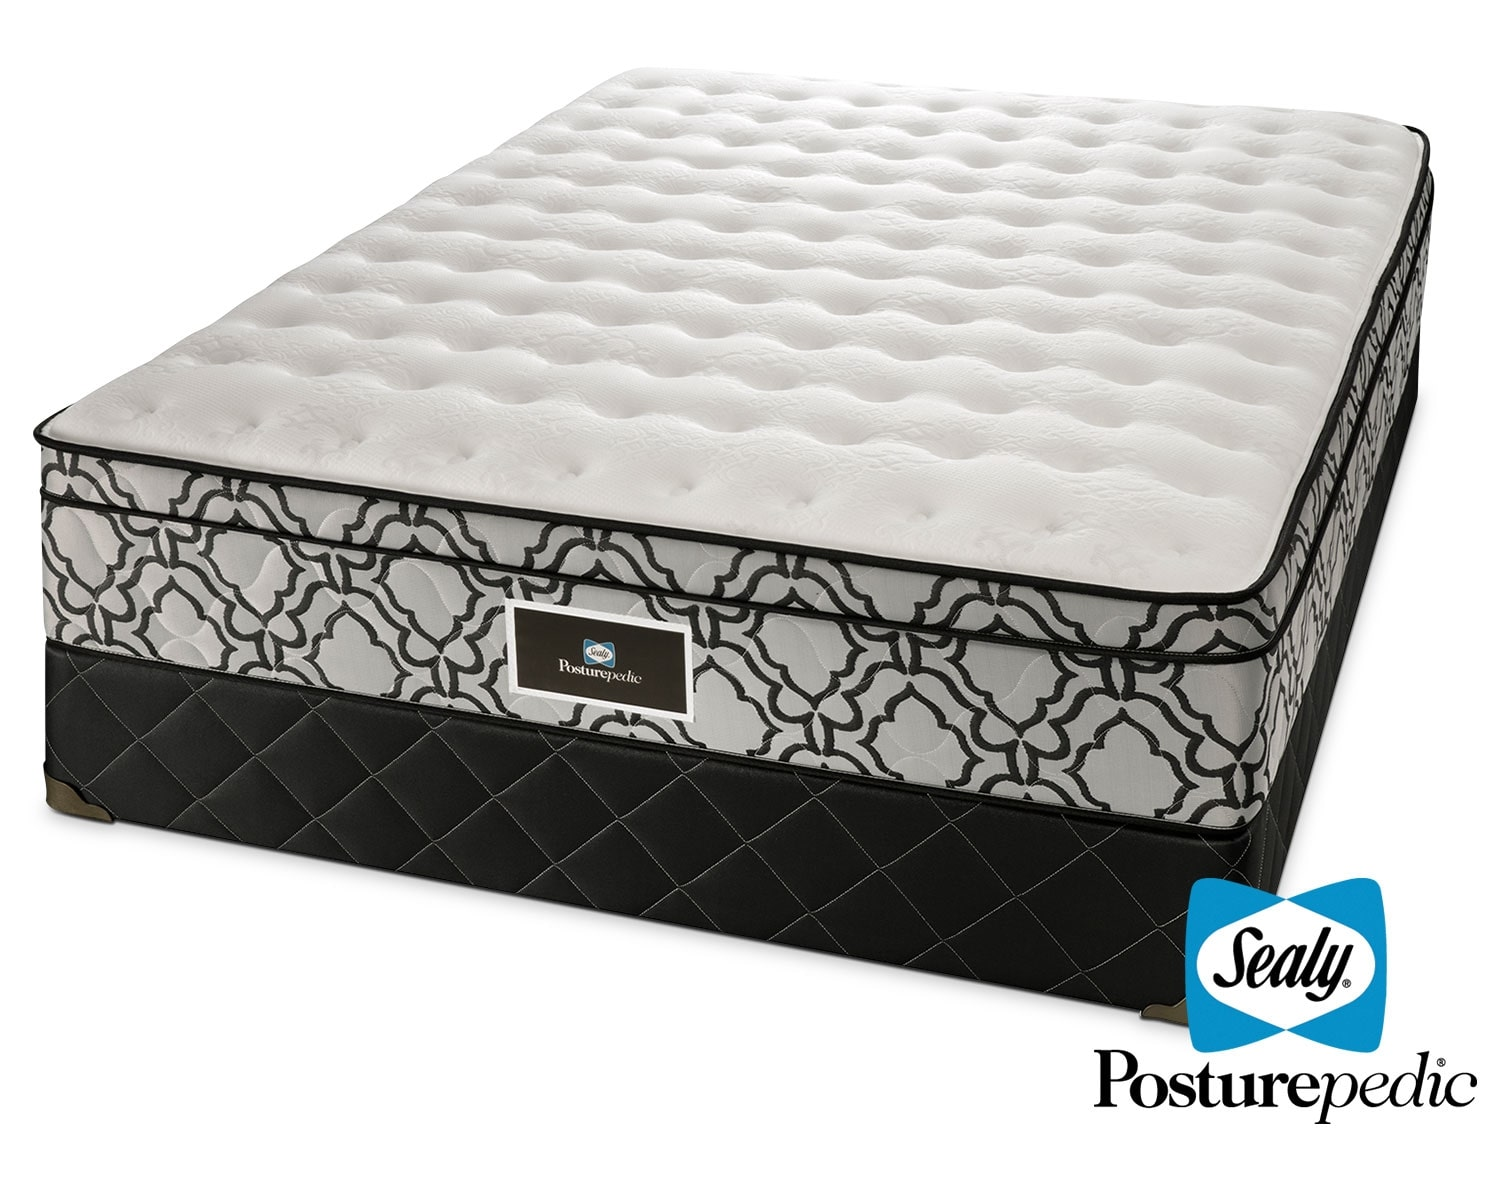 The Sealy Colosseum Mattress Collection